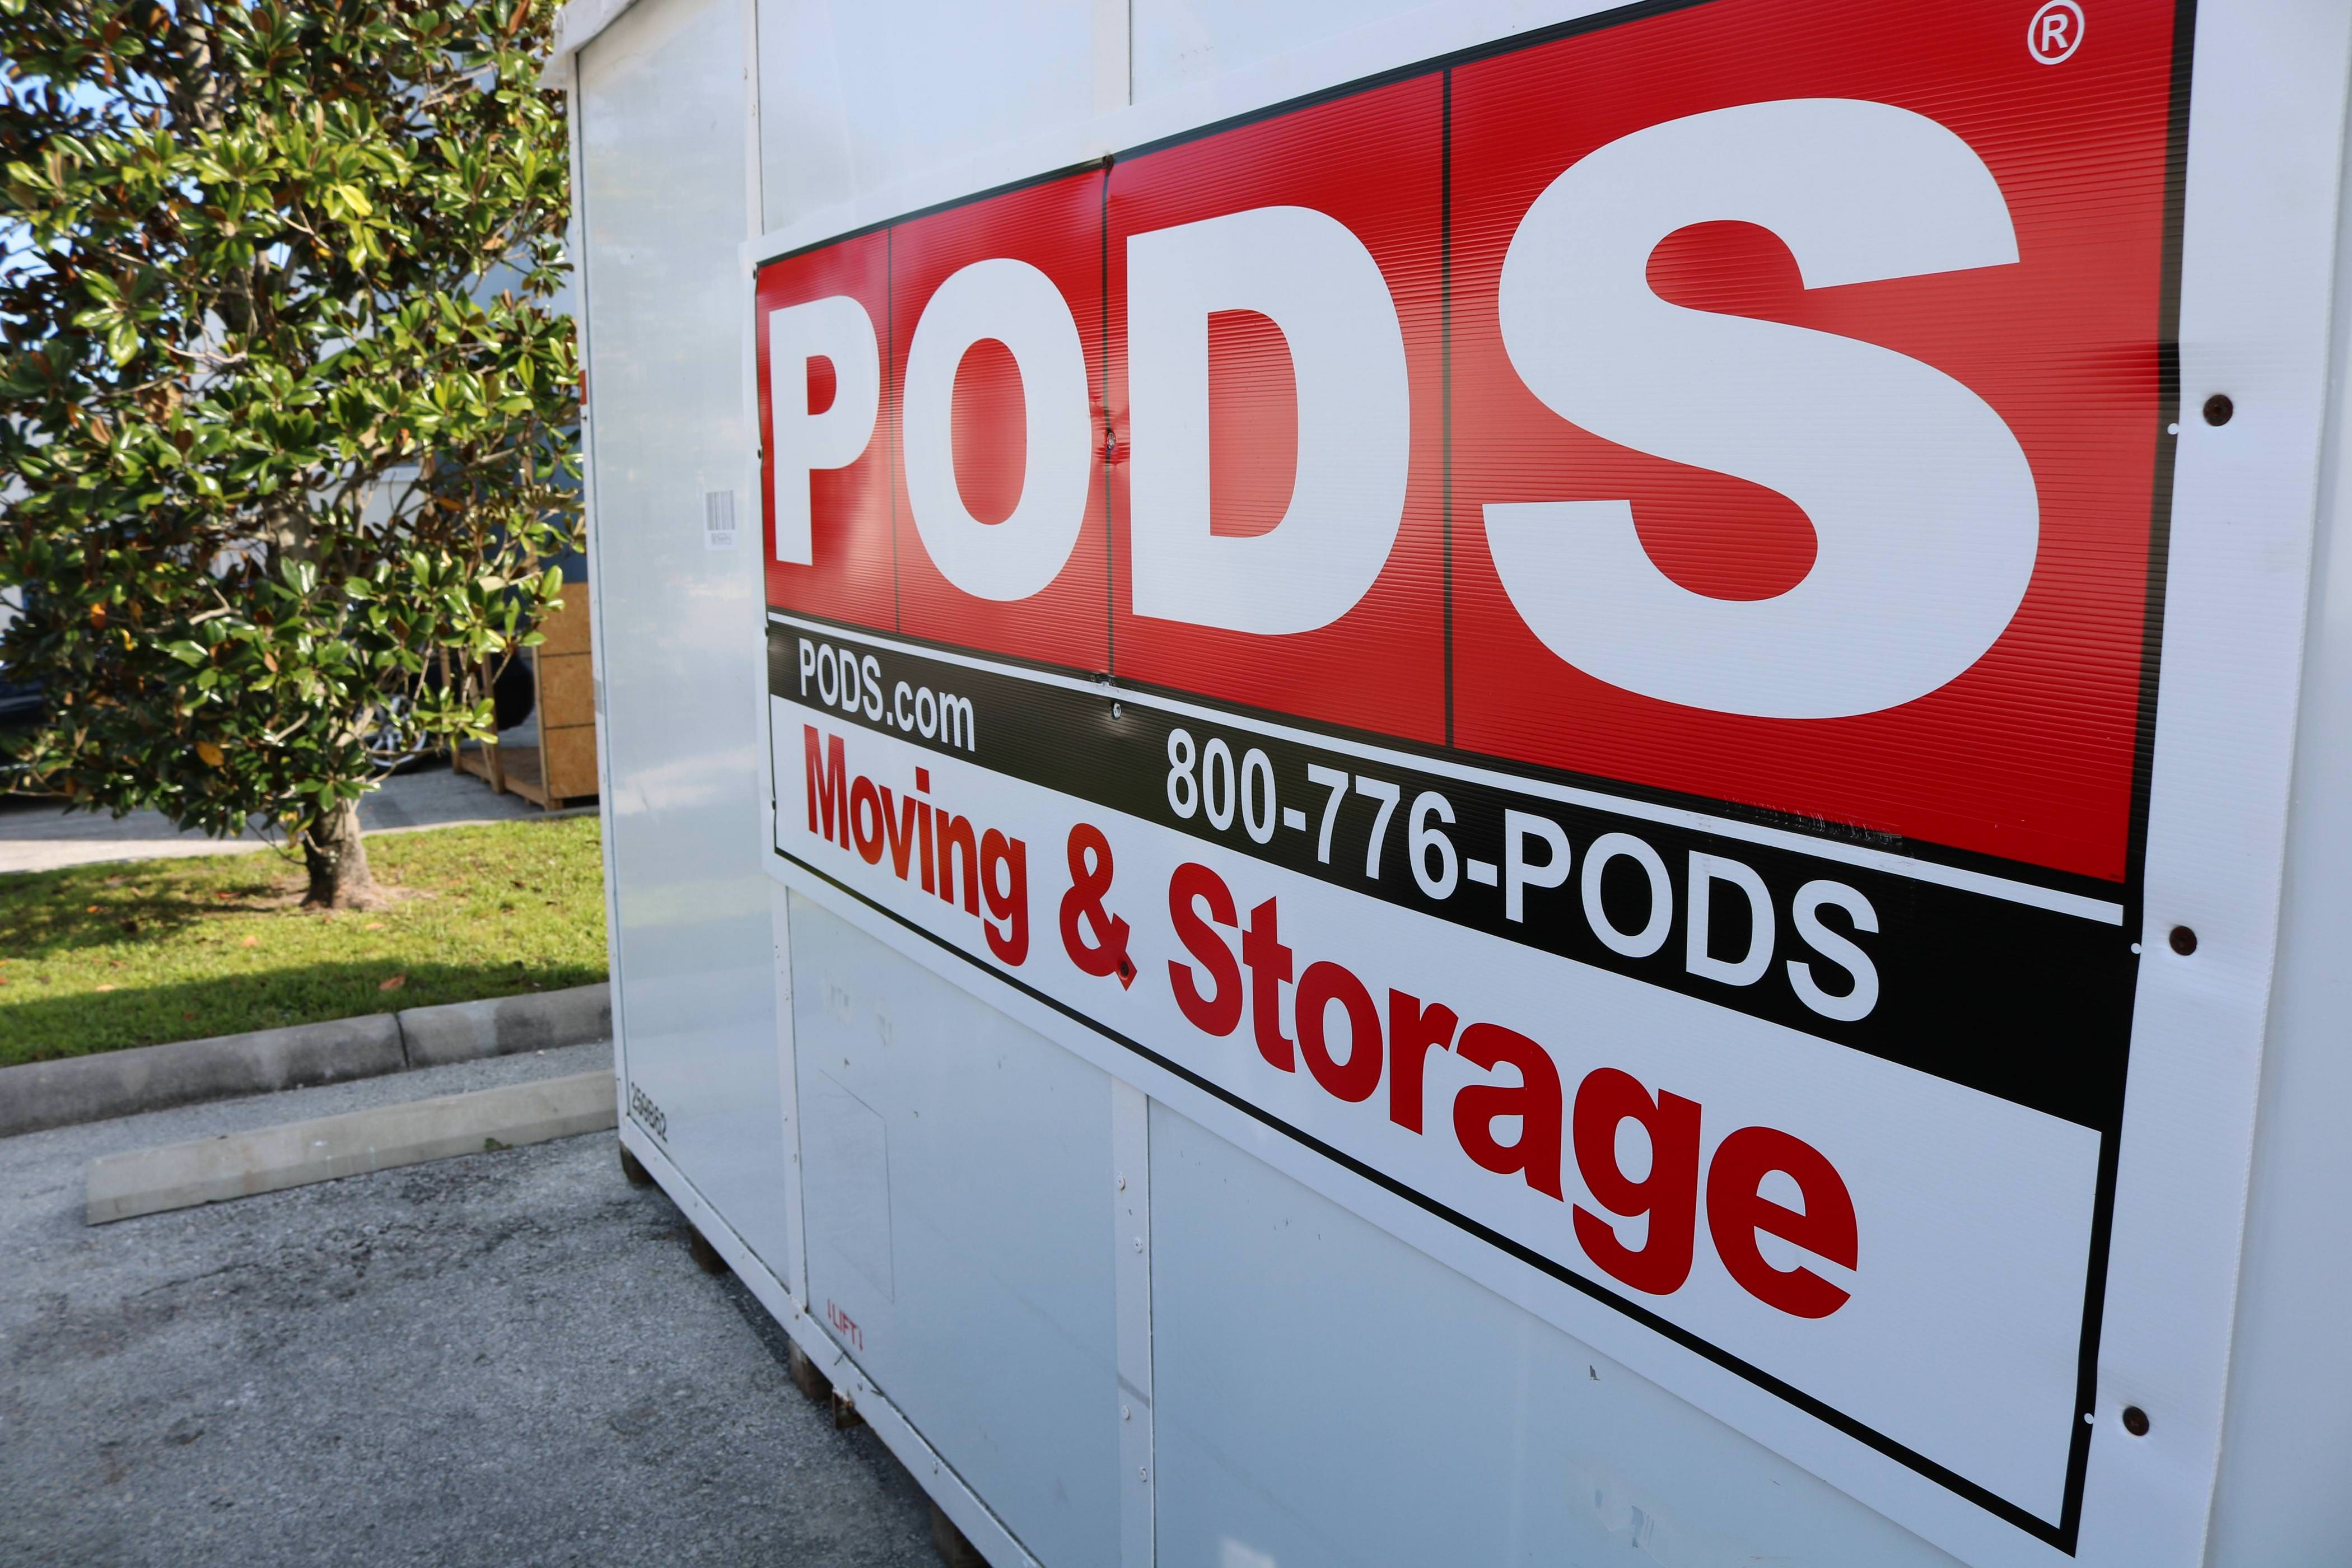 PODS - North Kingstown, RI